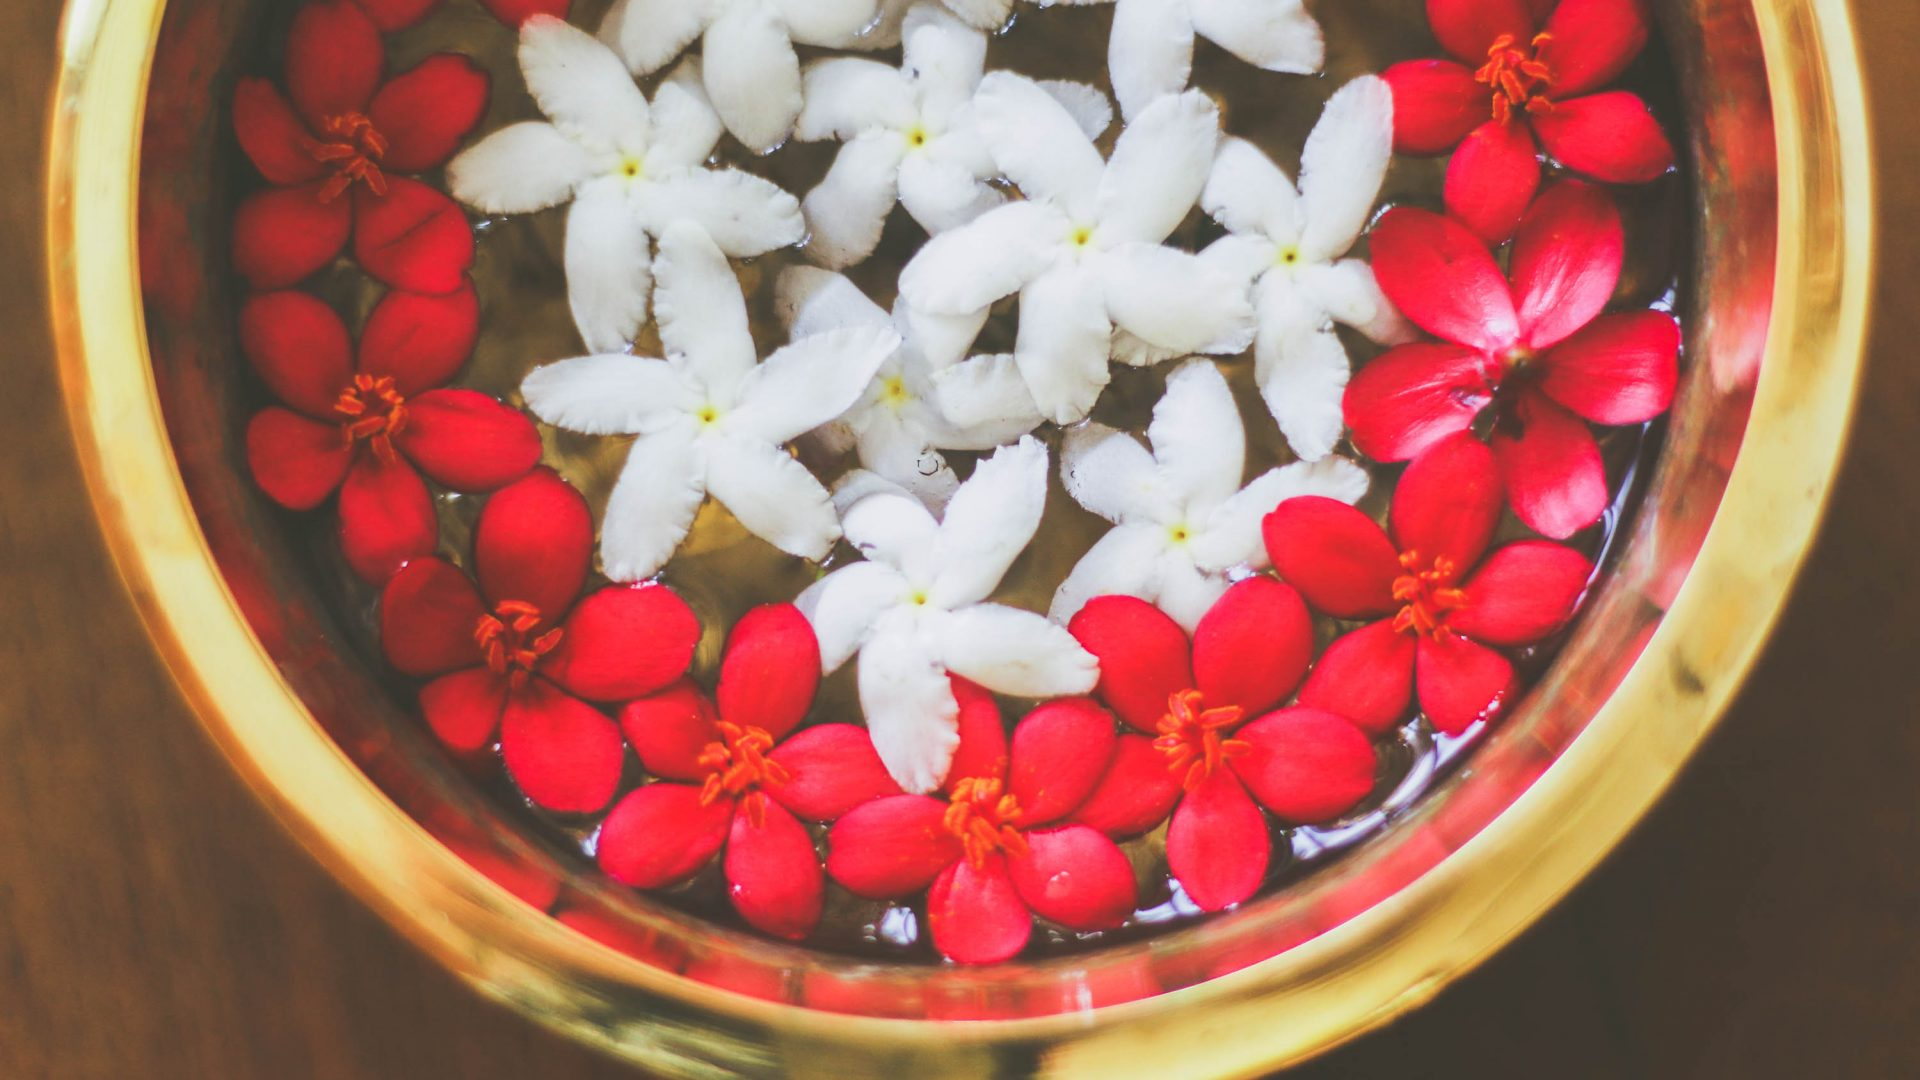 Flowers which form part of the Ayurveda experience.